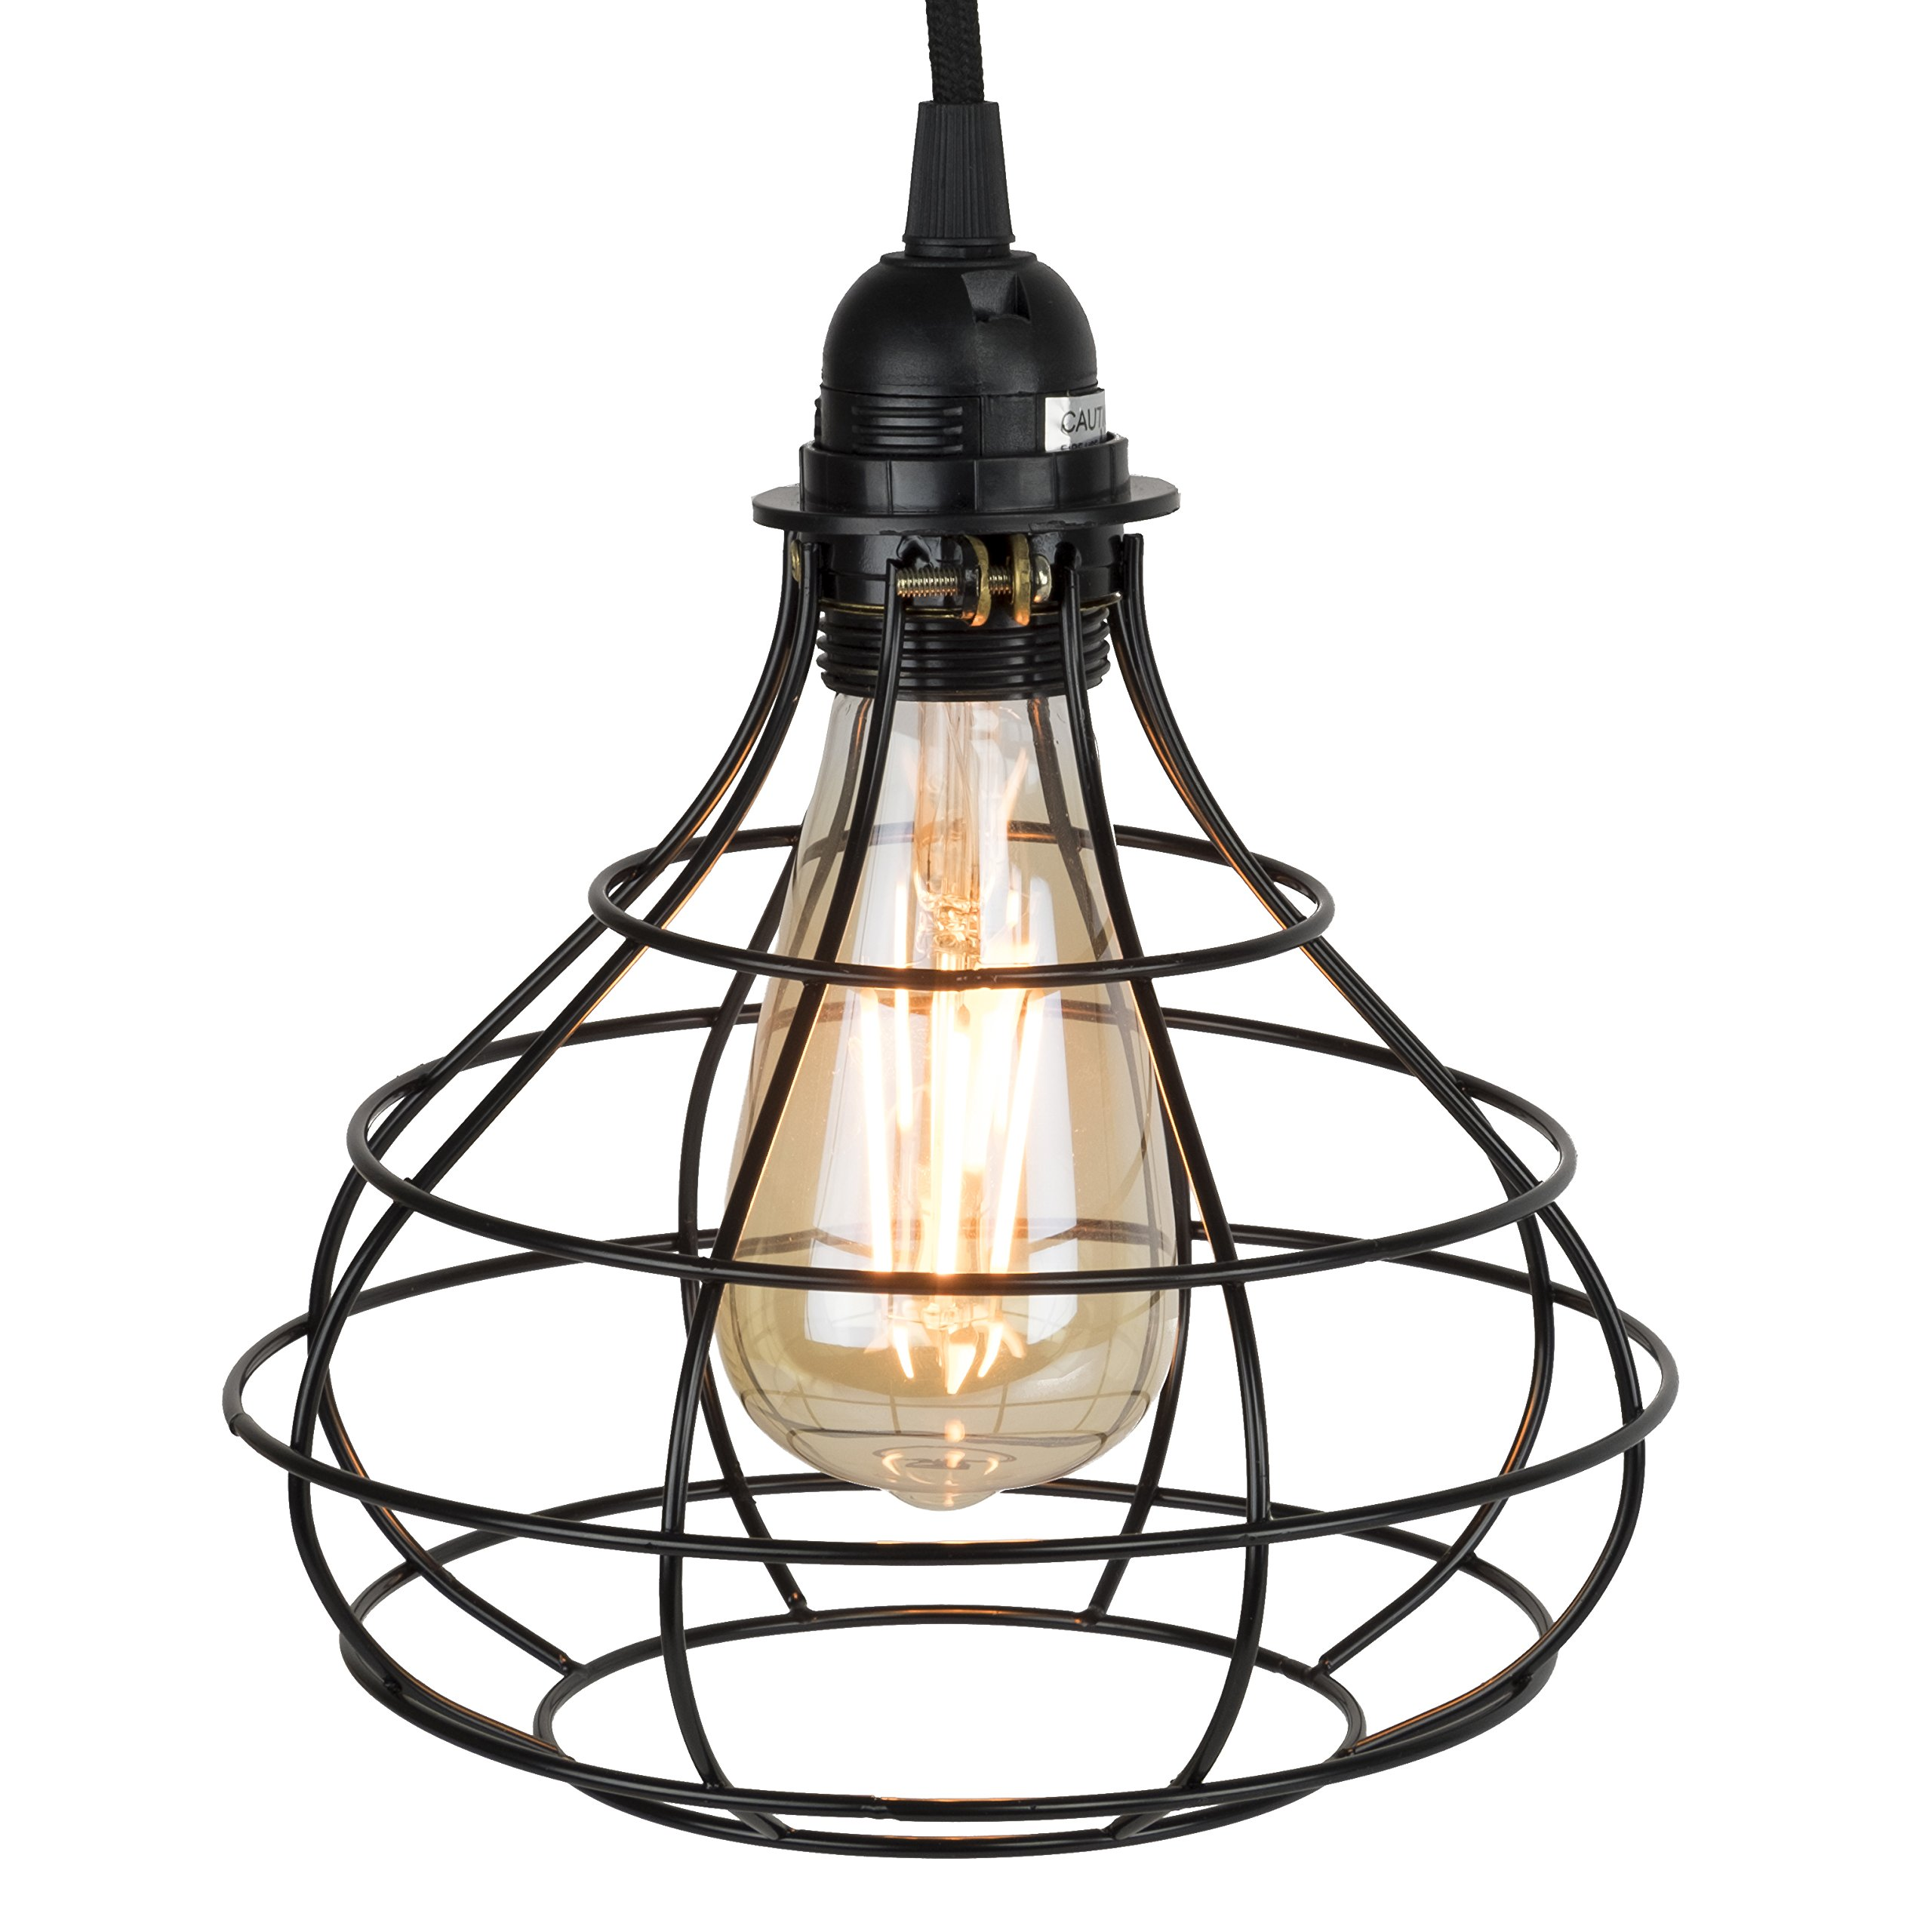 Industrial Cage Pendant Light with 15' Black Fabric Plug-in Cord and Toggle Switch Includes Edison LED Bulb in Black